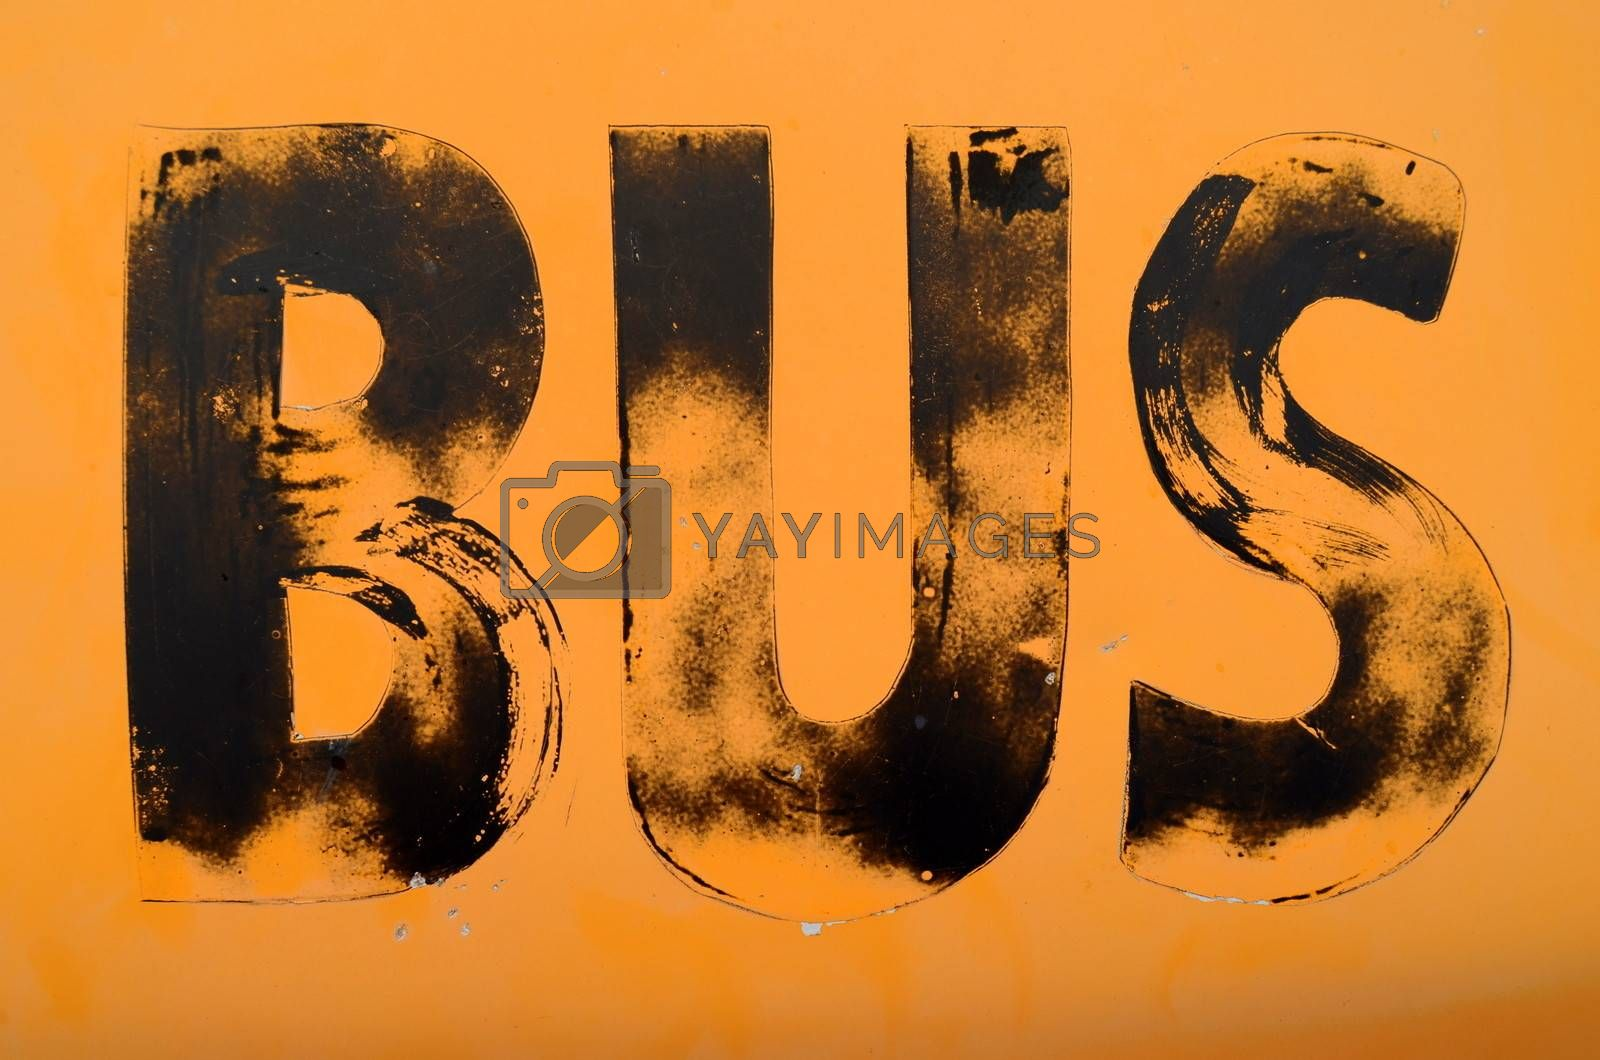 Urban Decay Image Of A Grungy Public Transport Sign For A School Bus